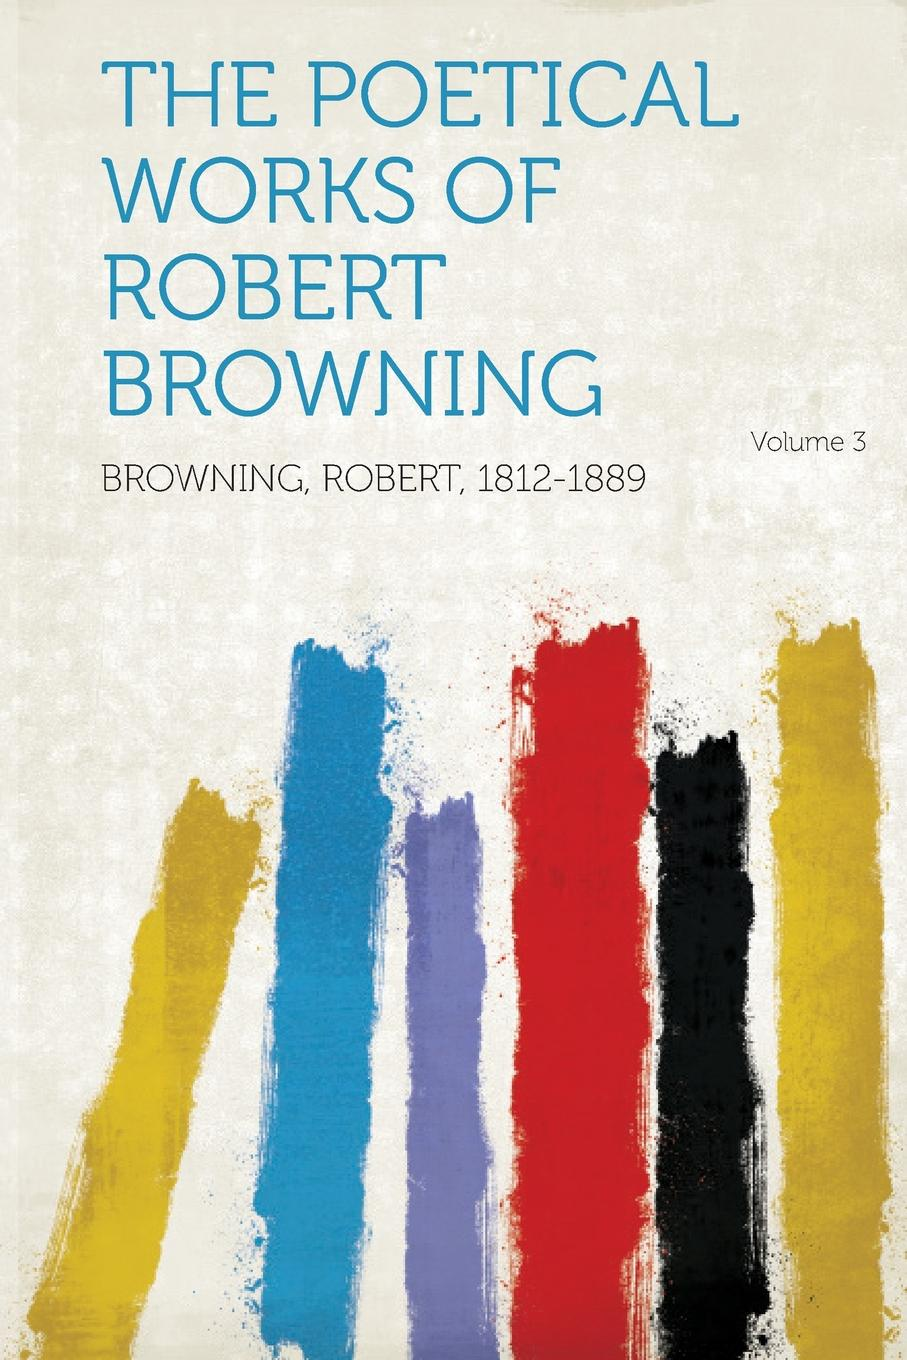 Robert Browning The Poetical Works of Robert Browning Volume 3 robert low the oathsworn series books 1 to 3